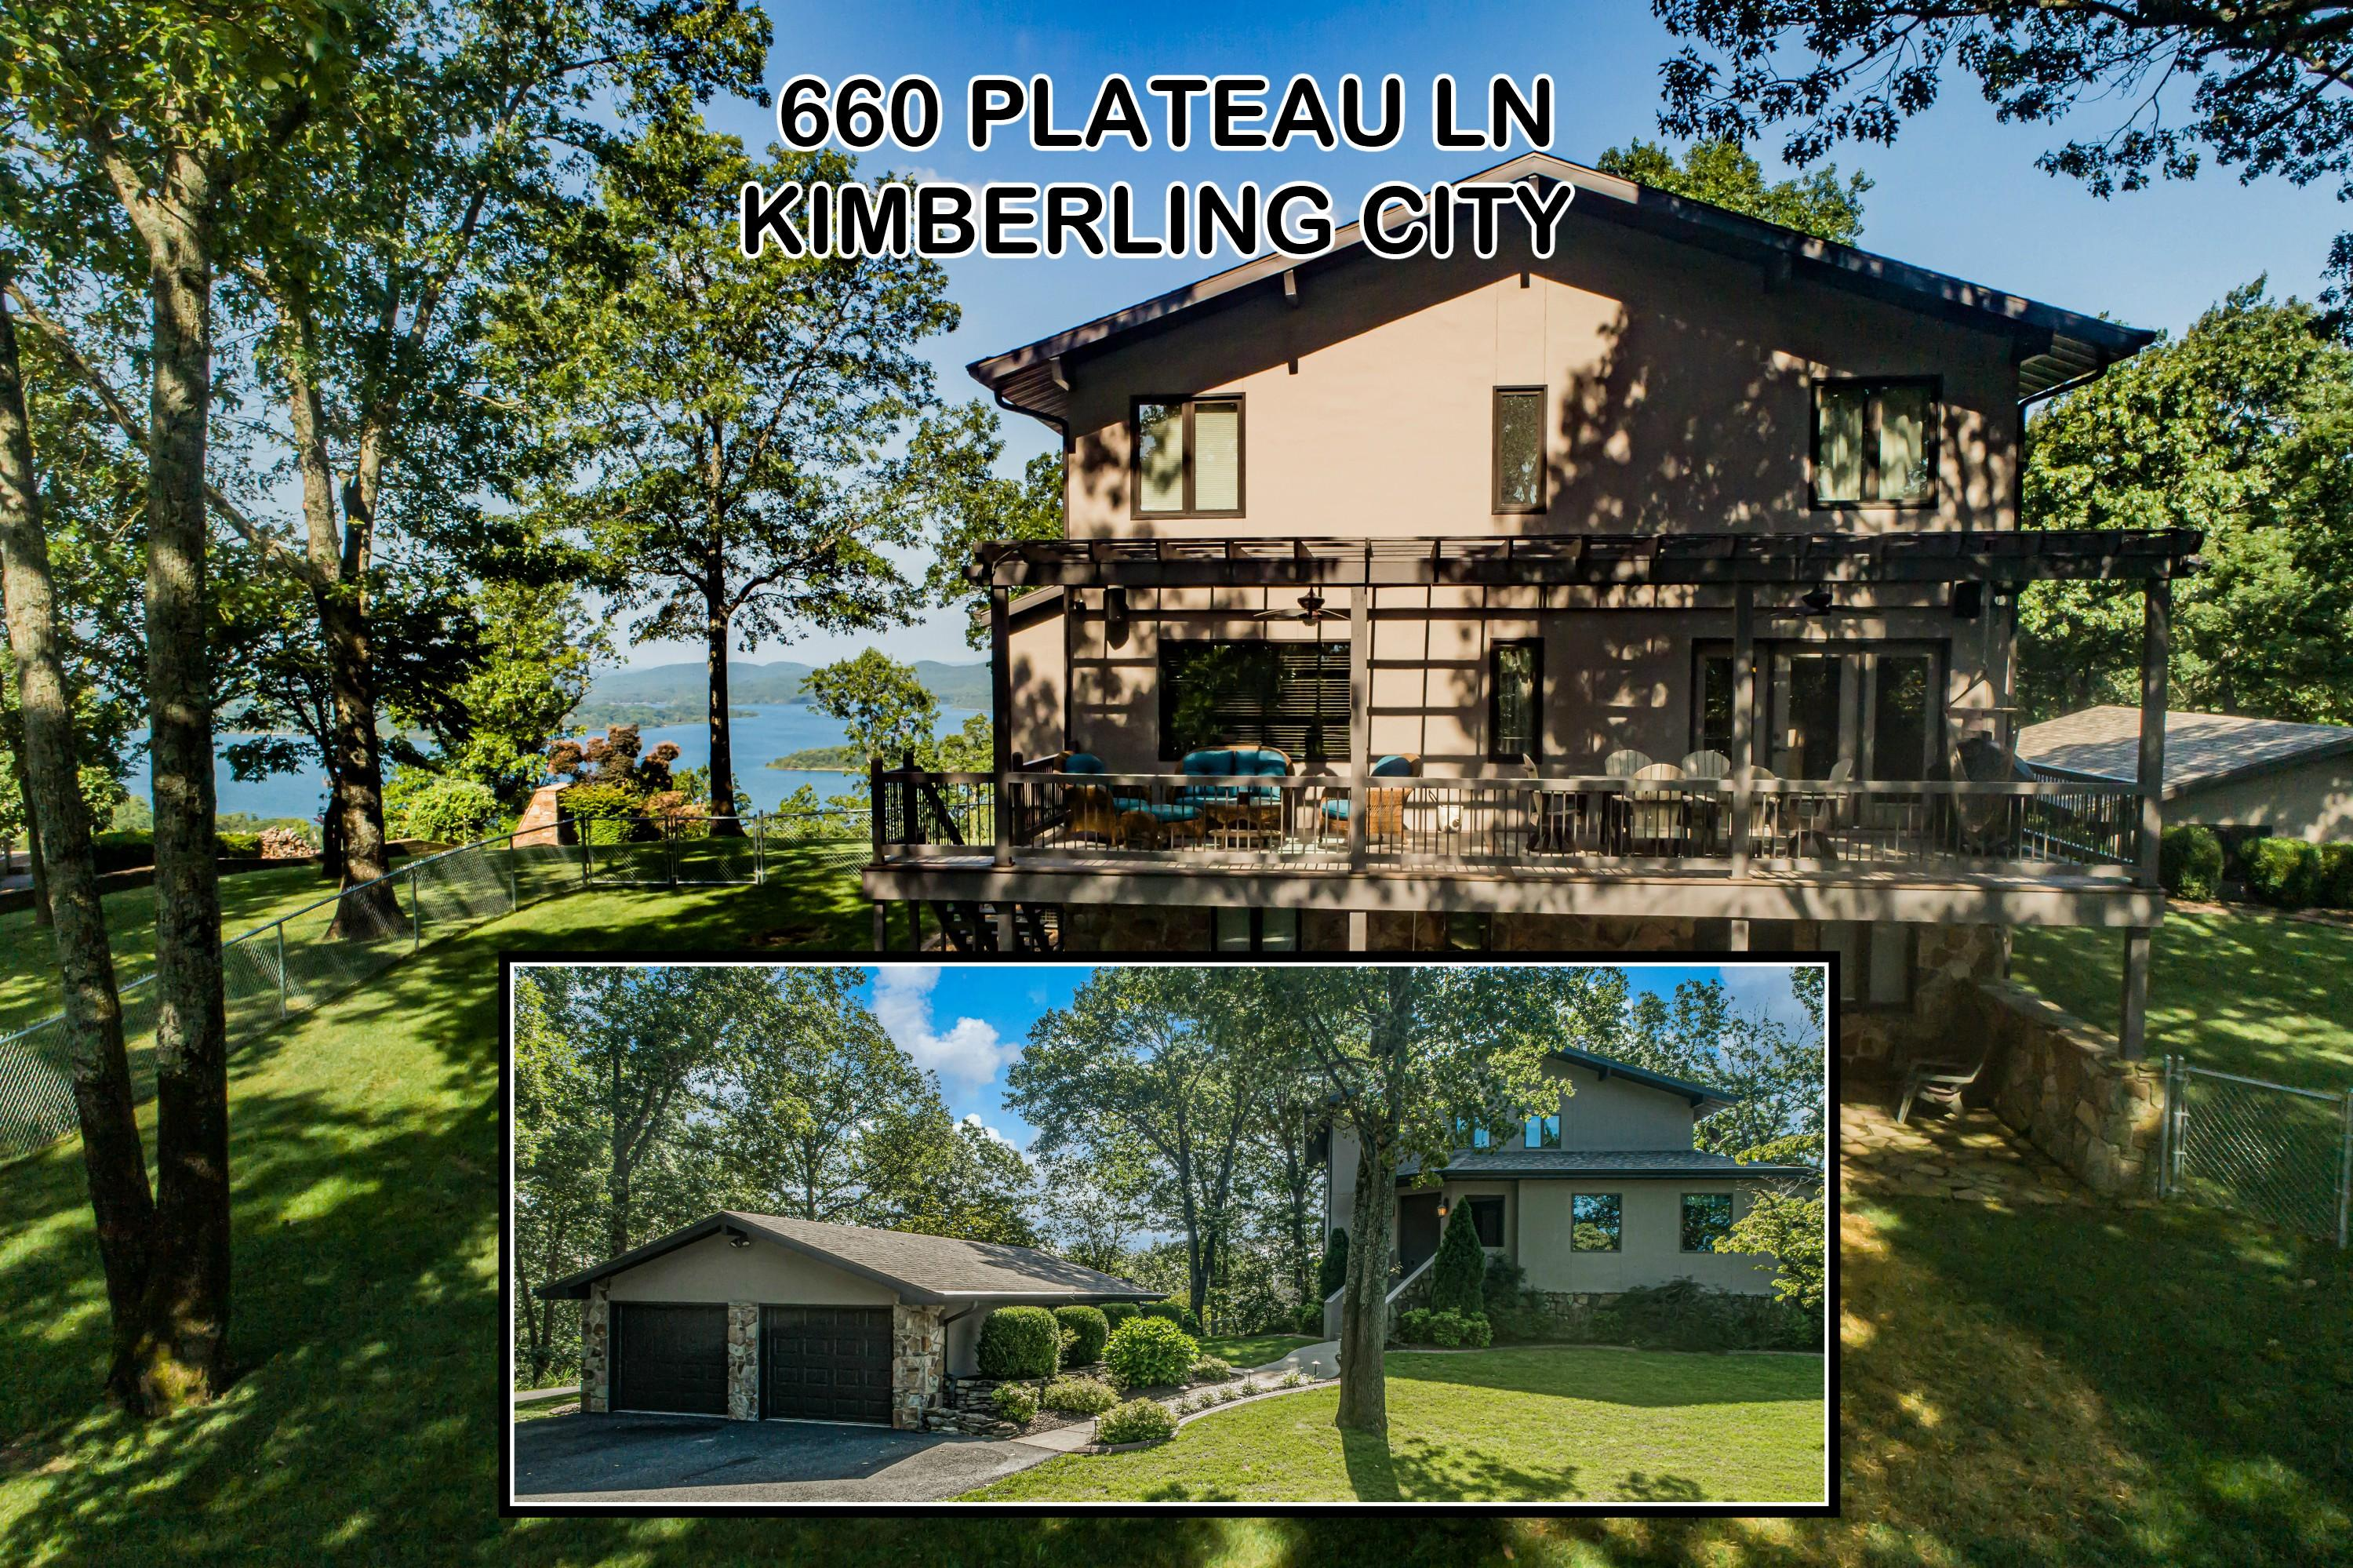 660 Plateau Lane Kimberling City, MO 65686